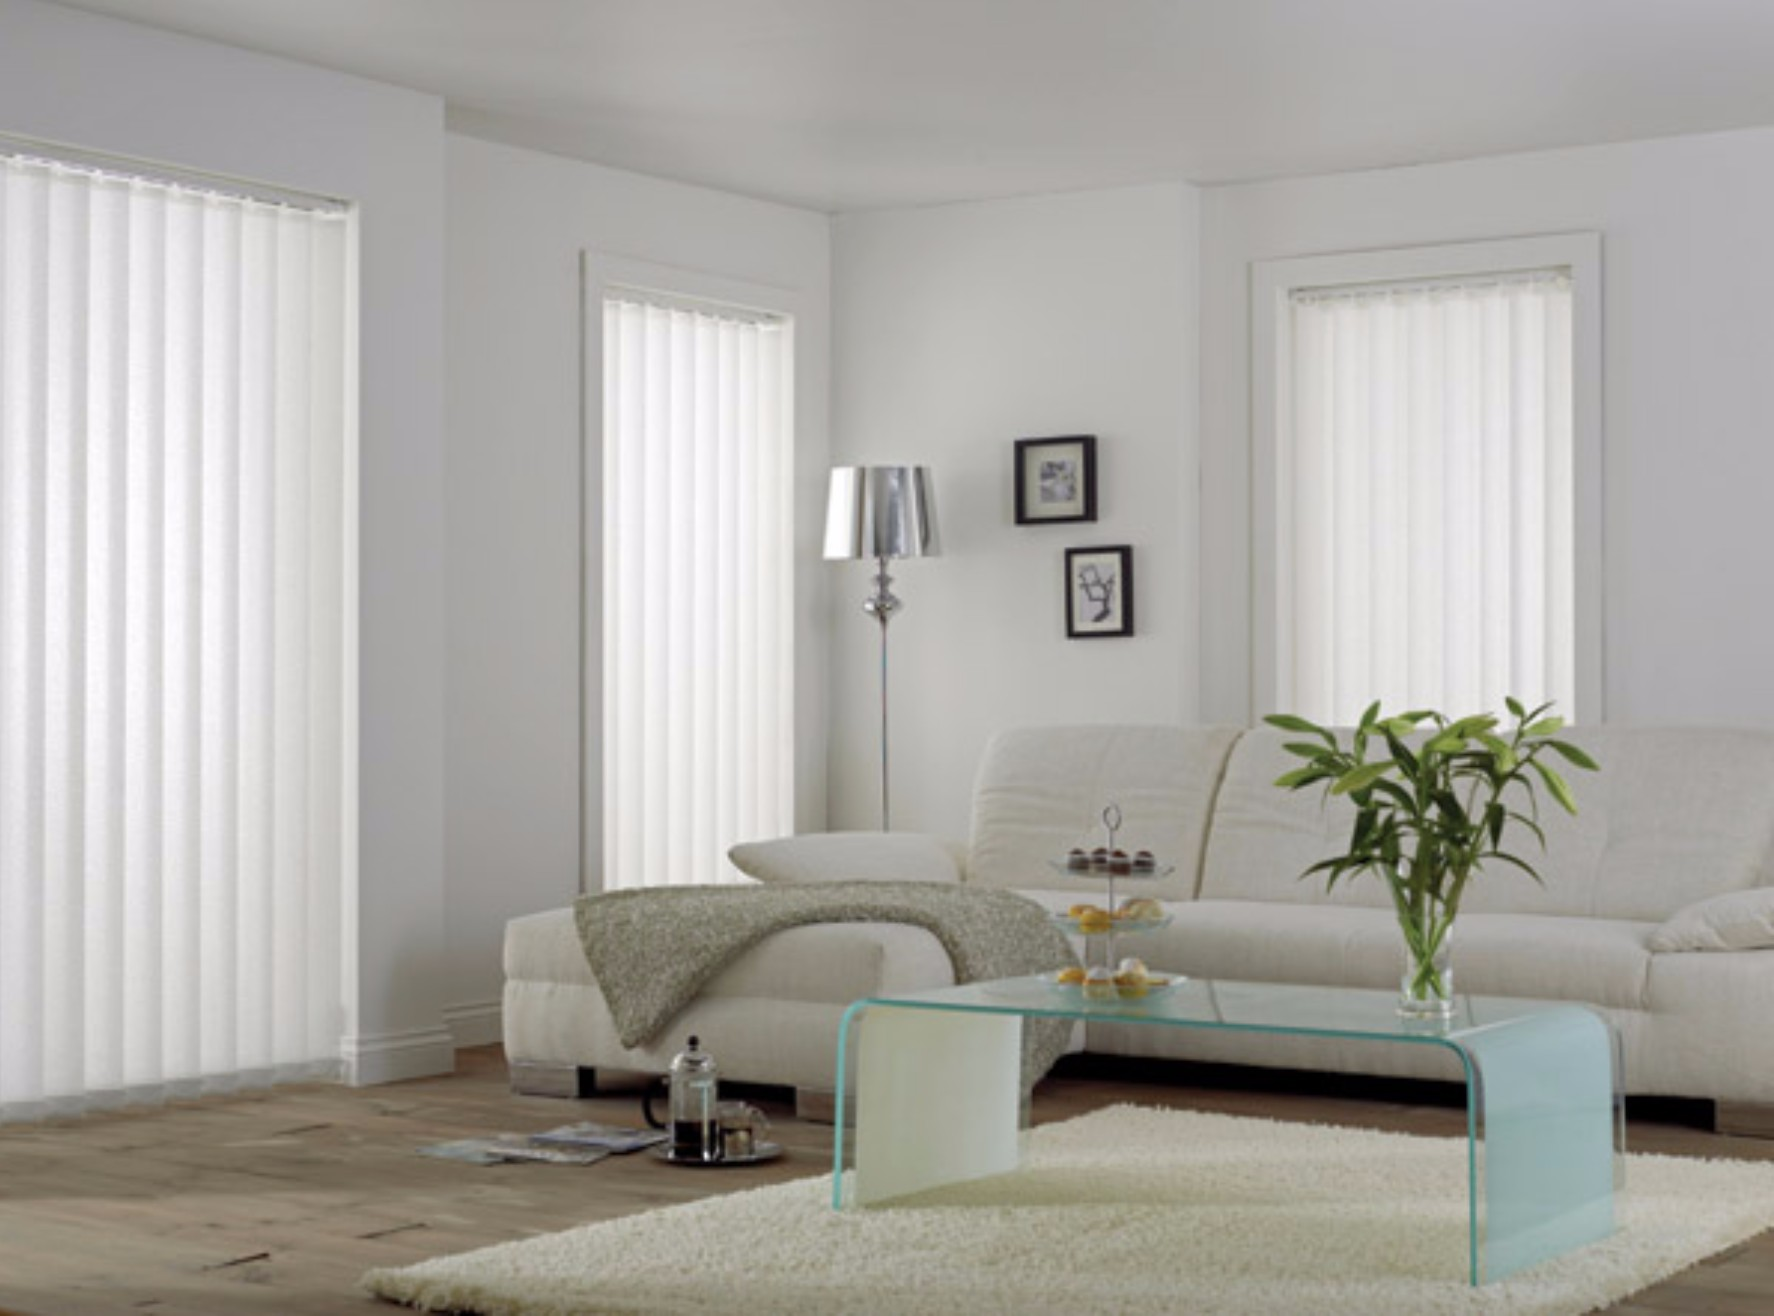 Vertical Blinds In London Slough Ruislip Ealing Uxbridge